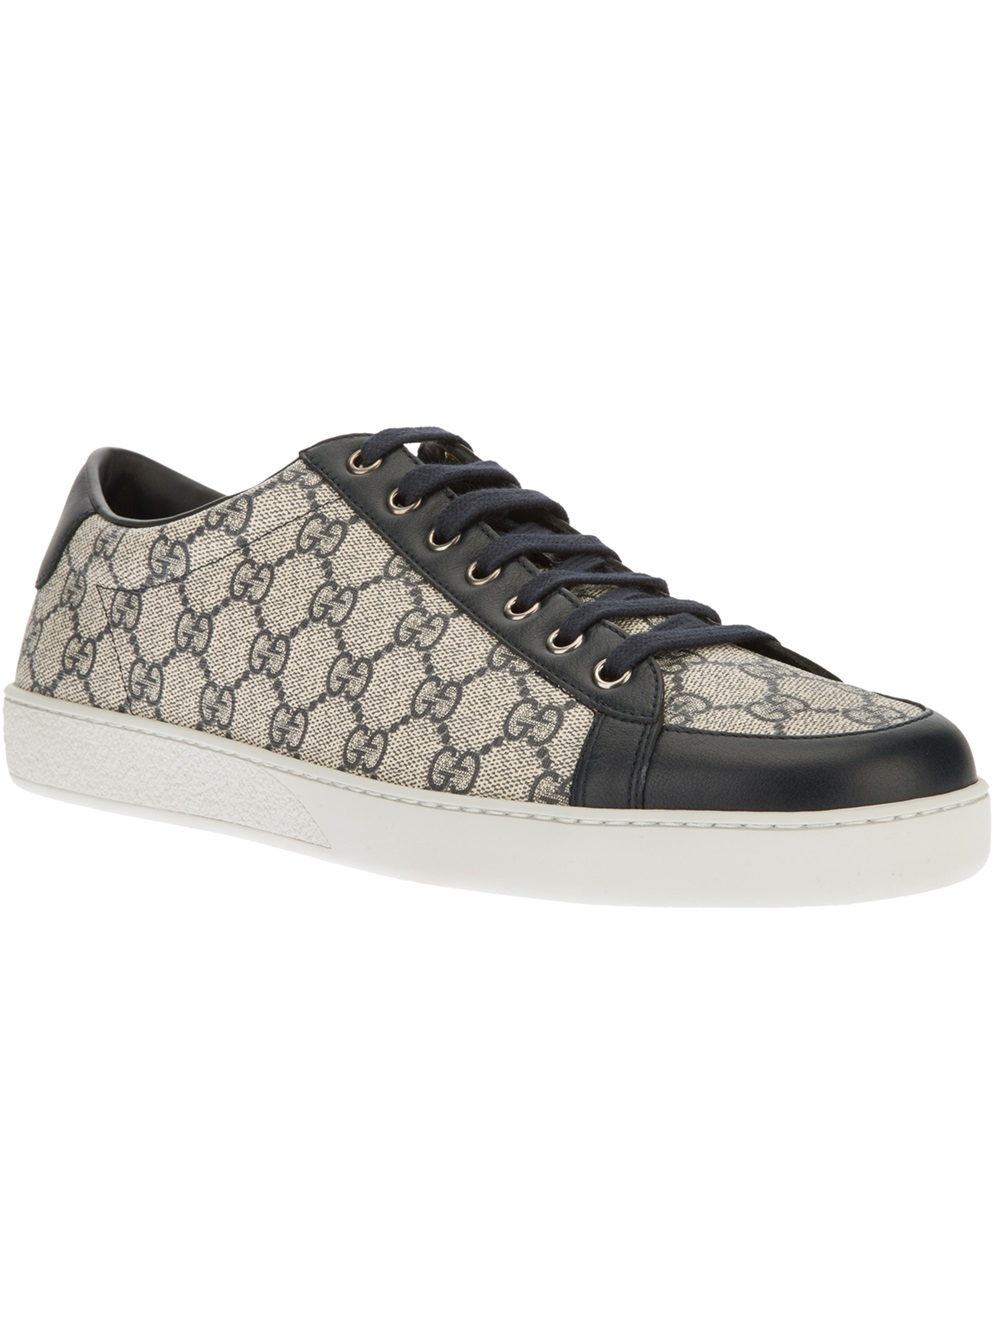 622e5443249e Lyst - Gucci Trainer in Black for Men